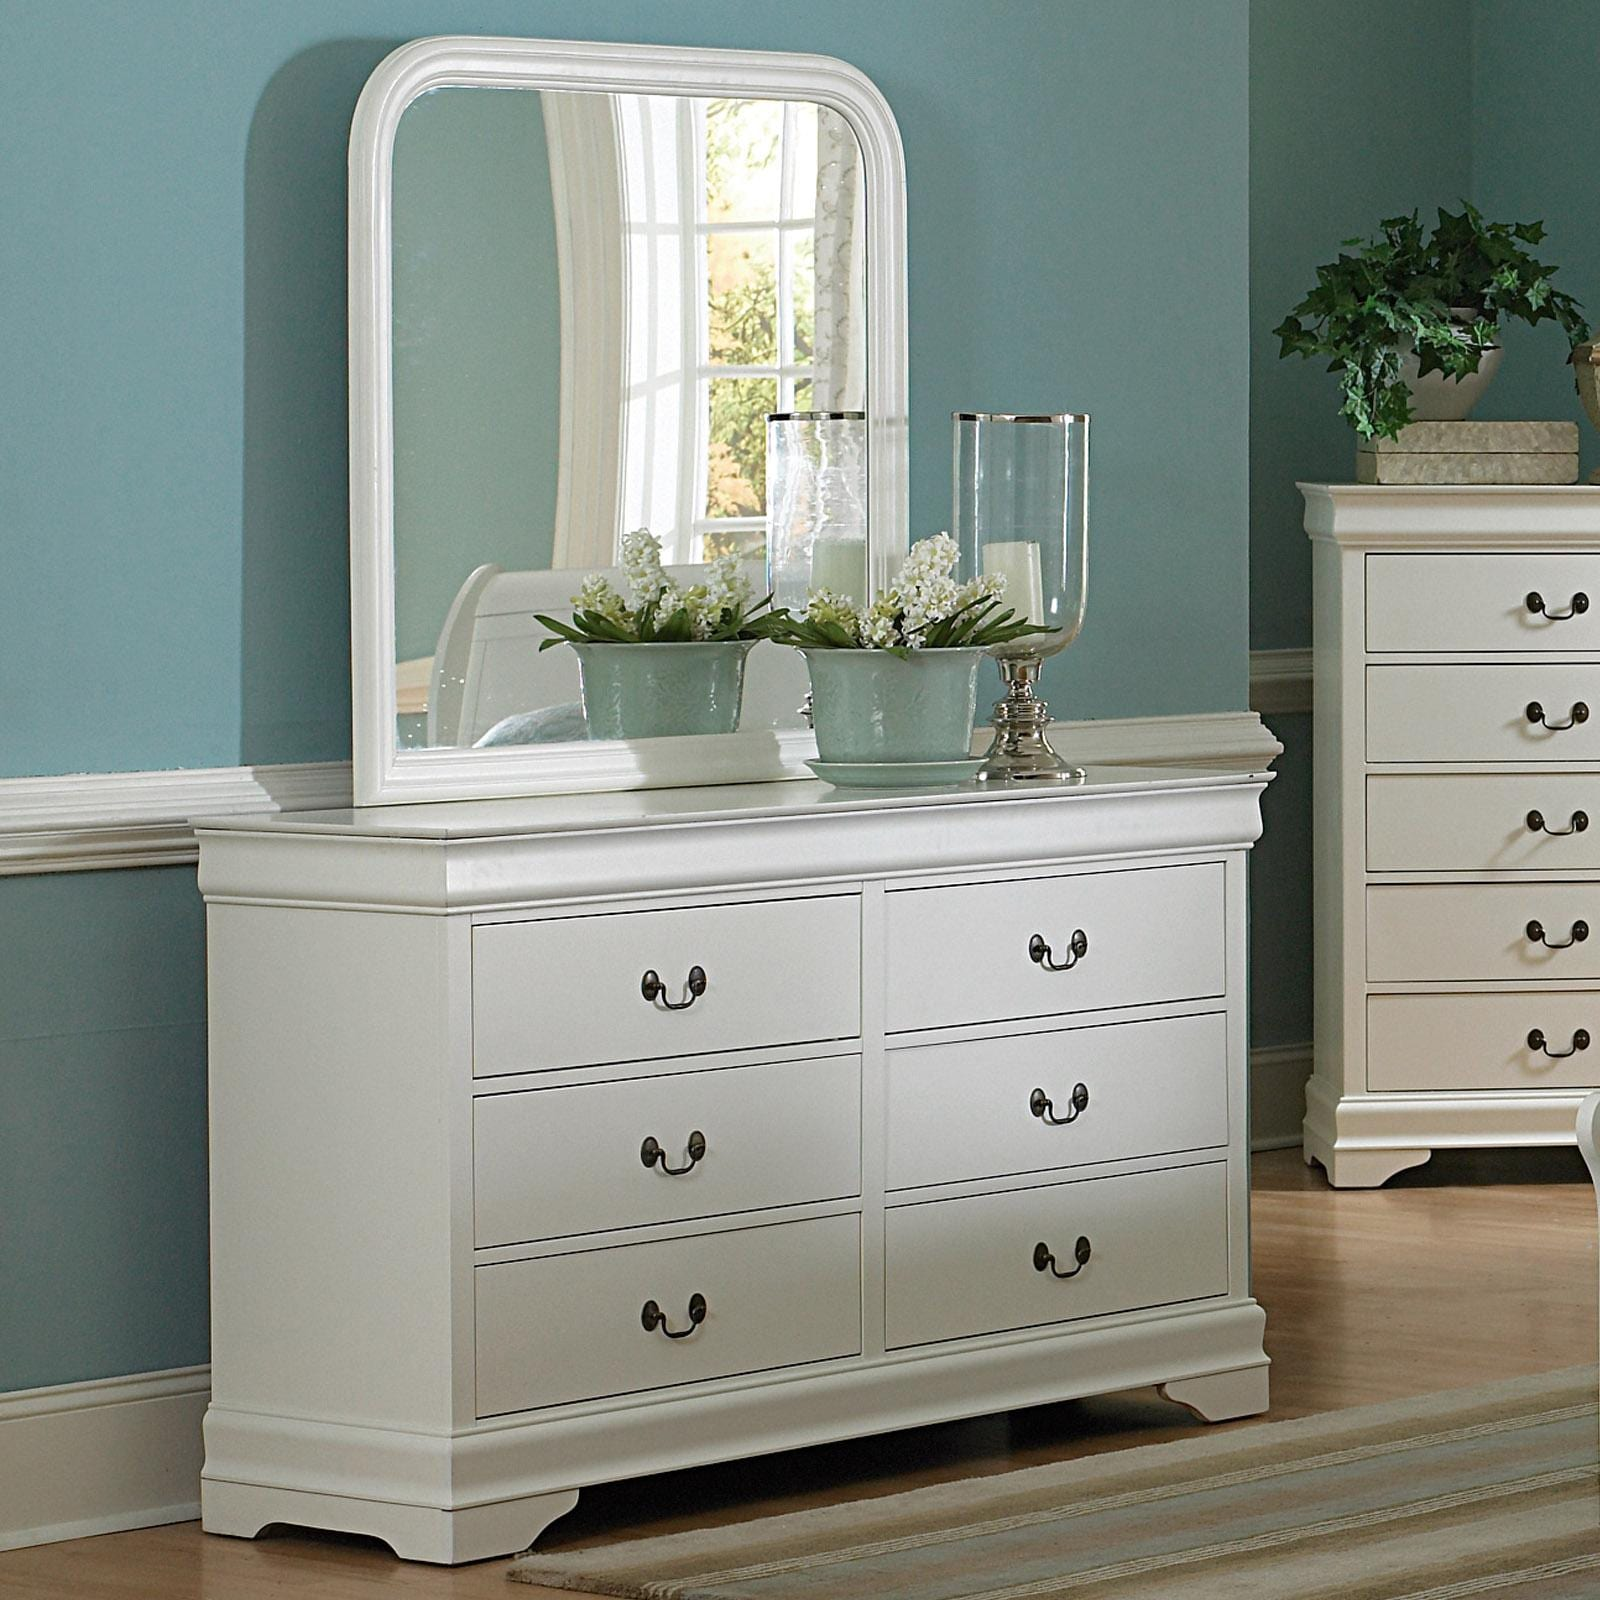 alfie white 6 drawer dresser with mirror 13497315 shopping great deals on. Black Bedroom Furniture Sets. Home Design Ideas